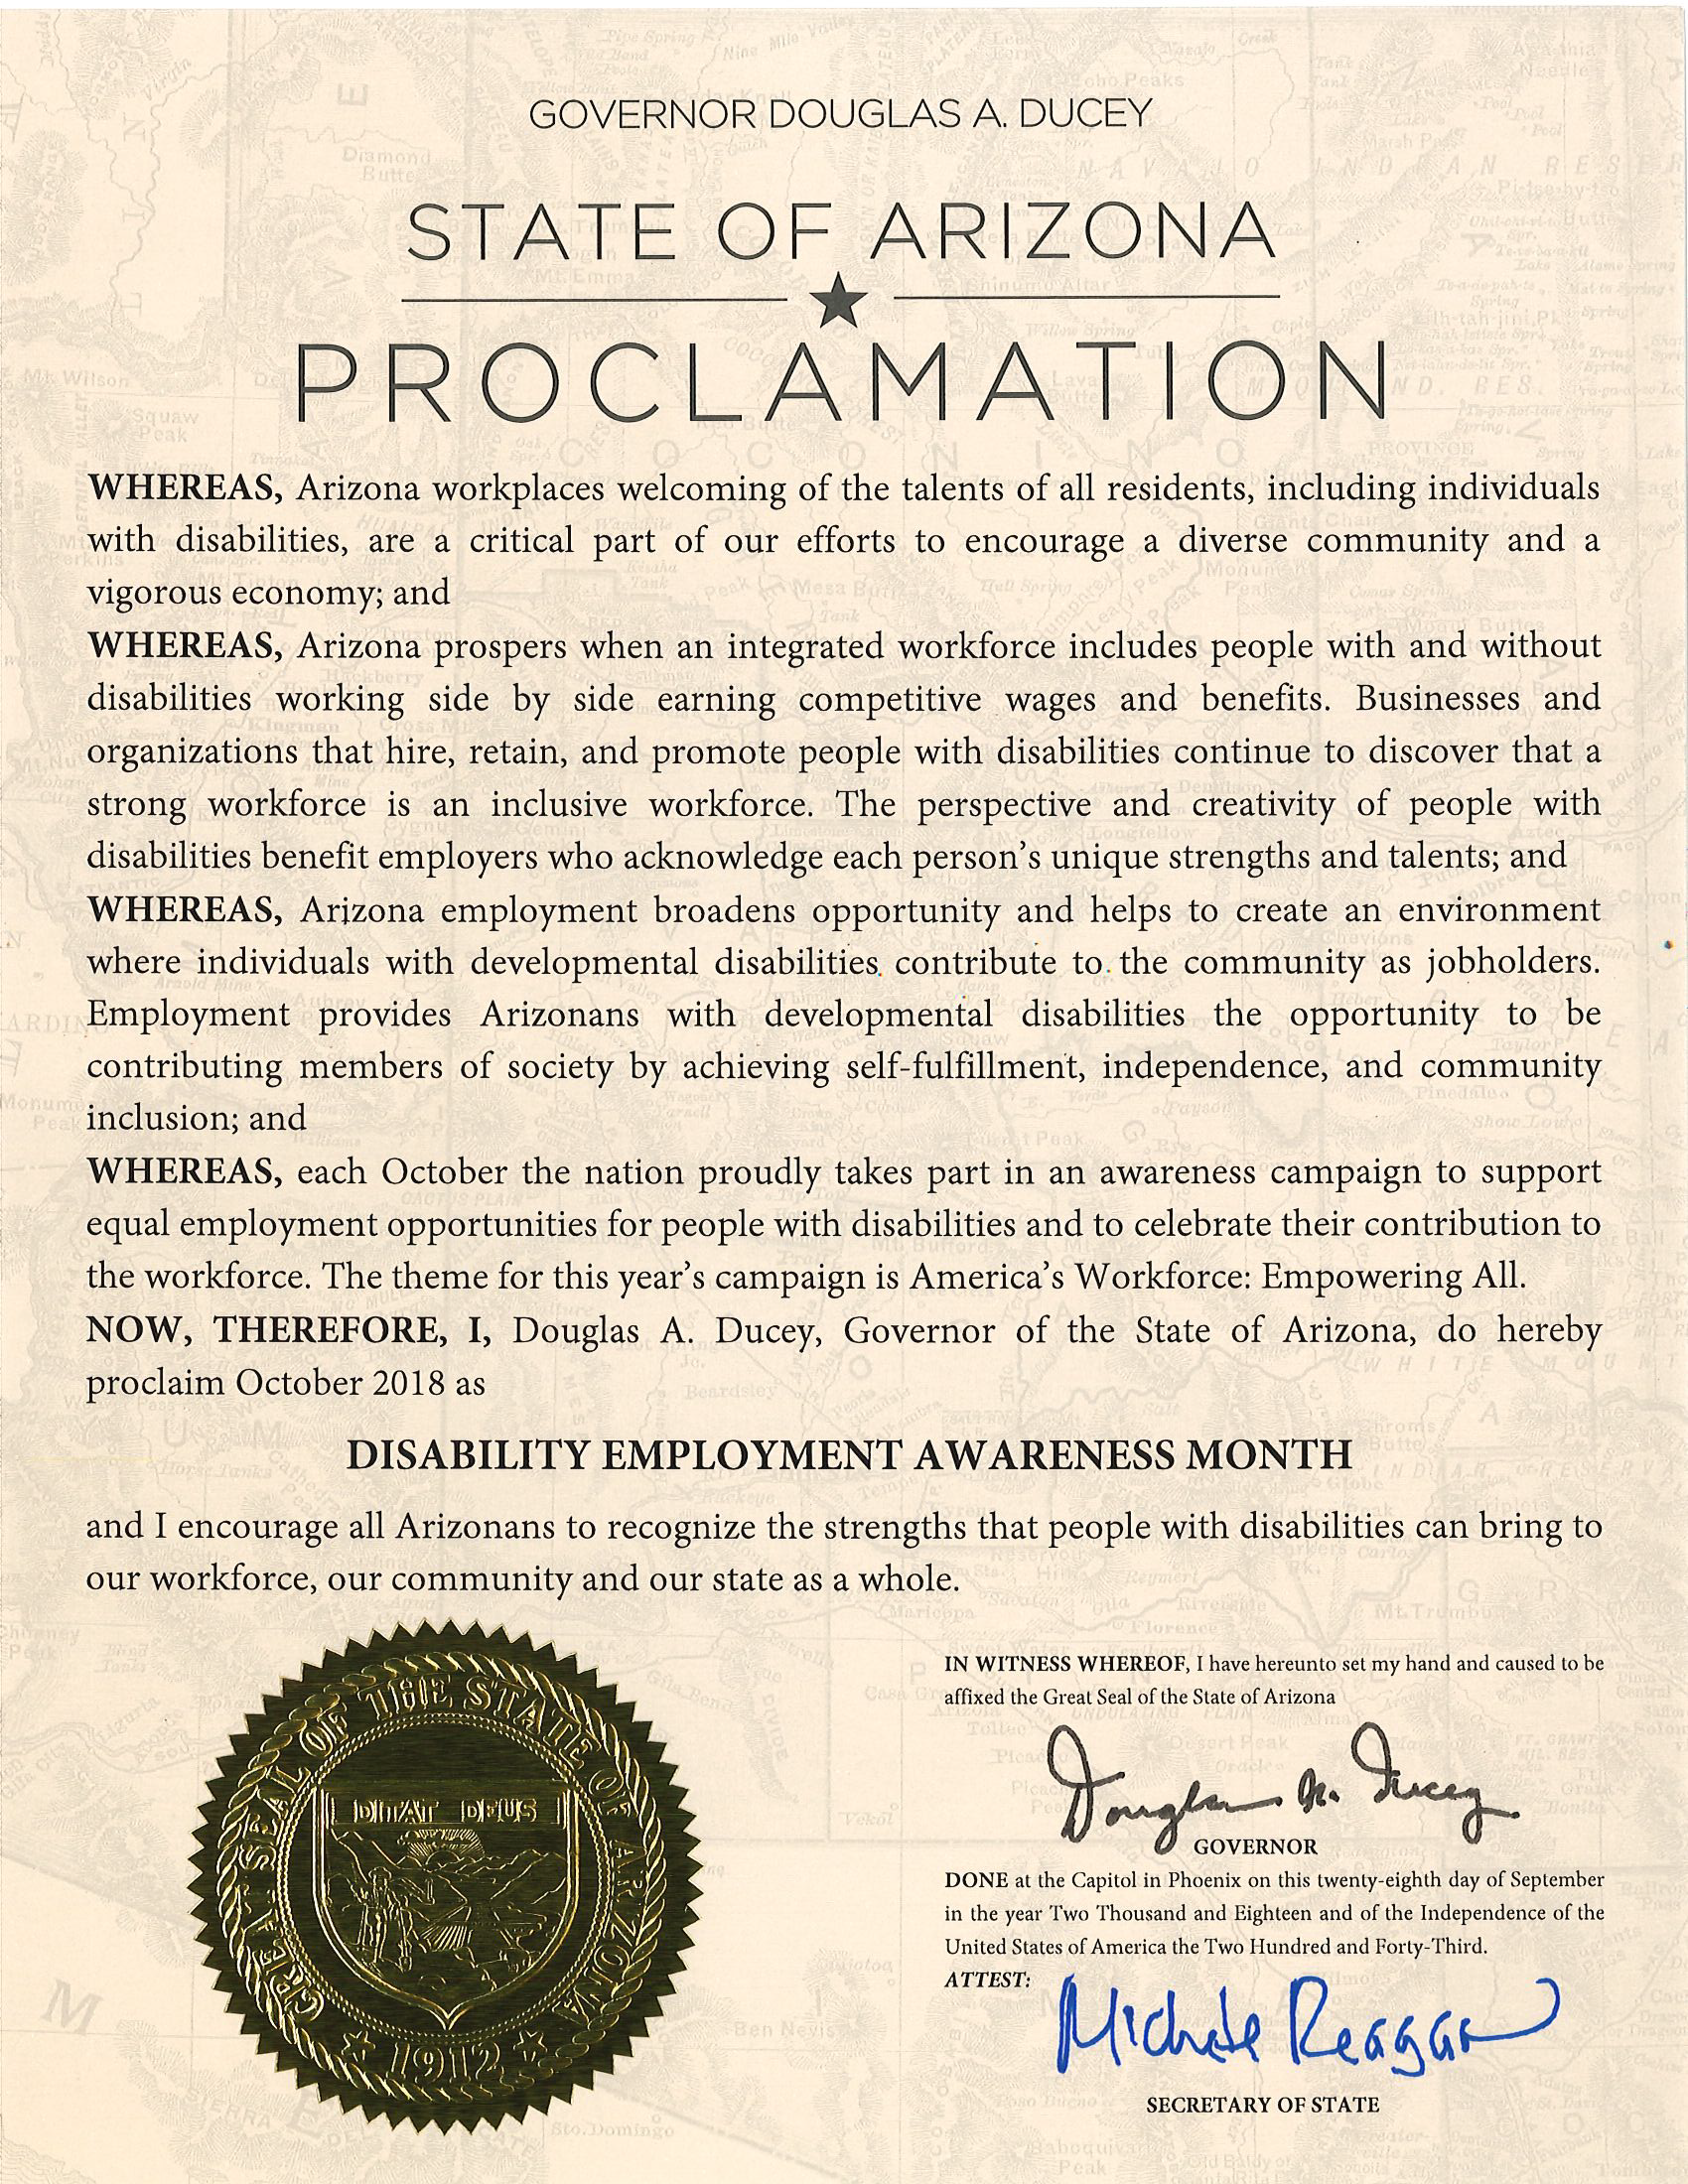 2018 Disability Employment Awareness Month Proclamation